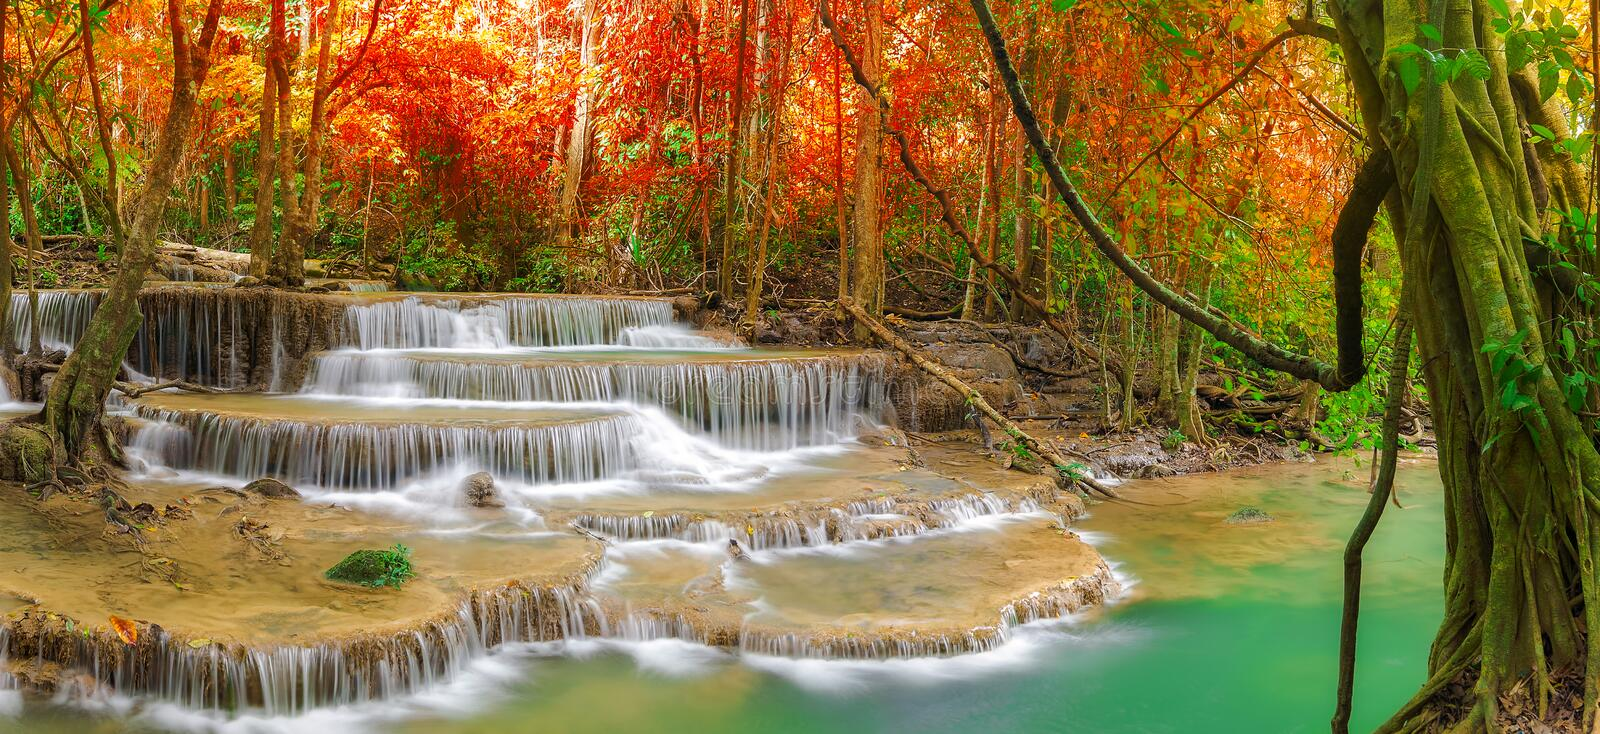 Waterfall in autumn forest. royalty free stock images